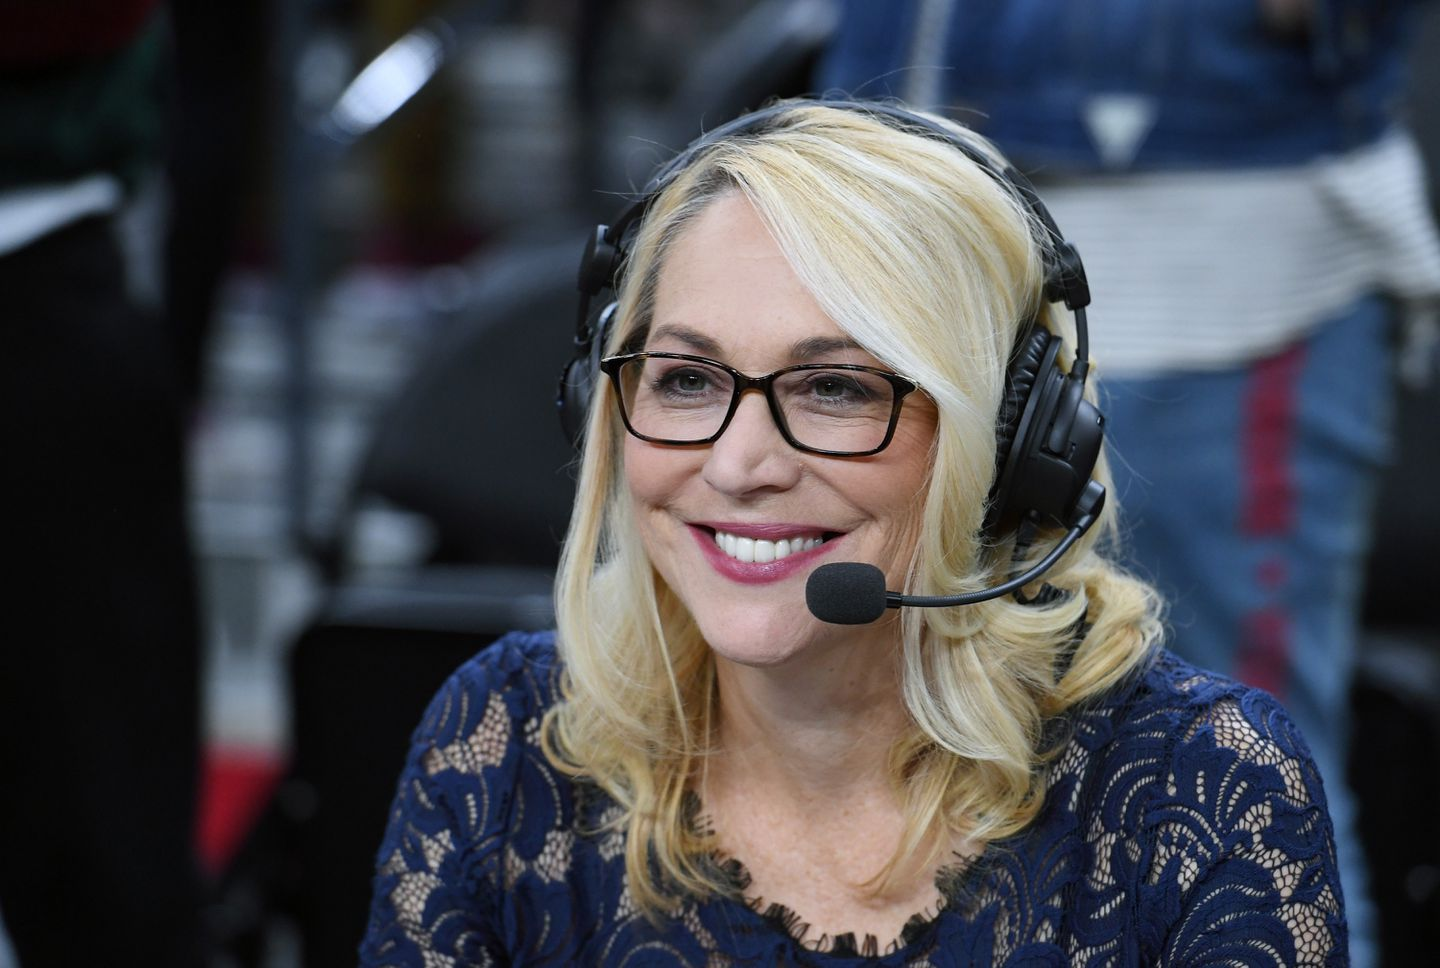 While Doris Burke Told The World Of The Nba Stoppage She Was